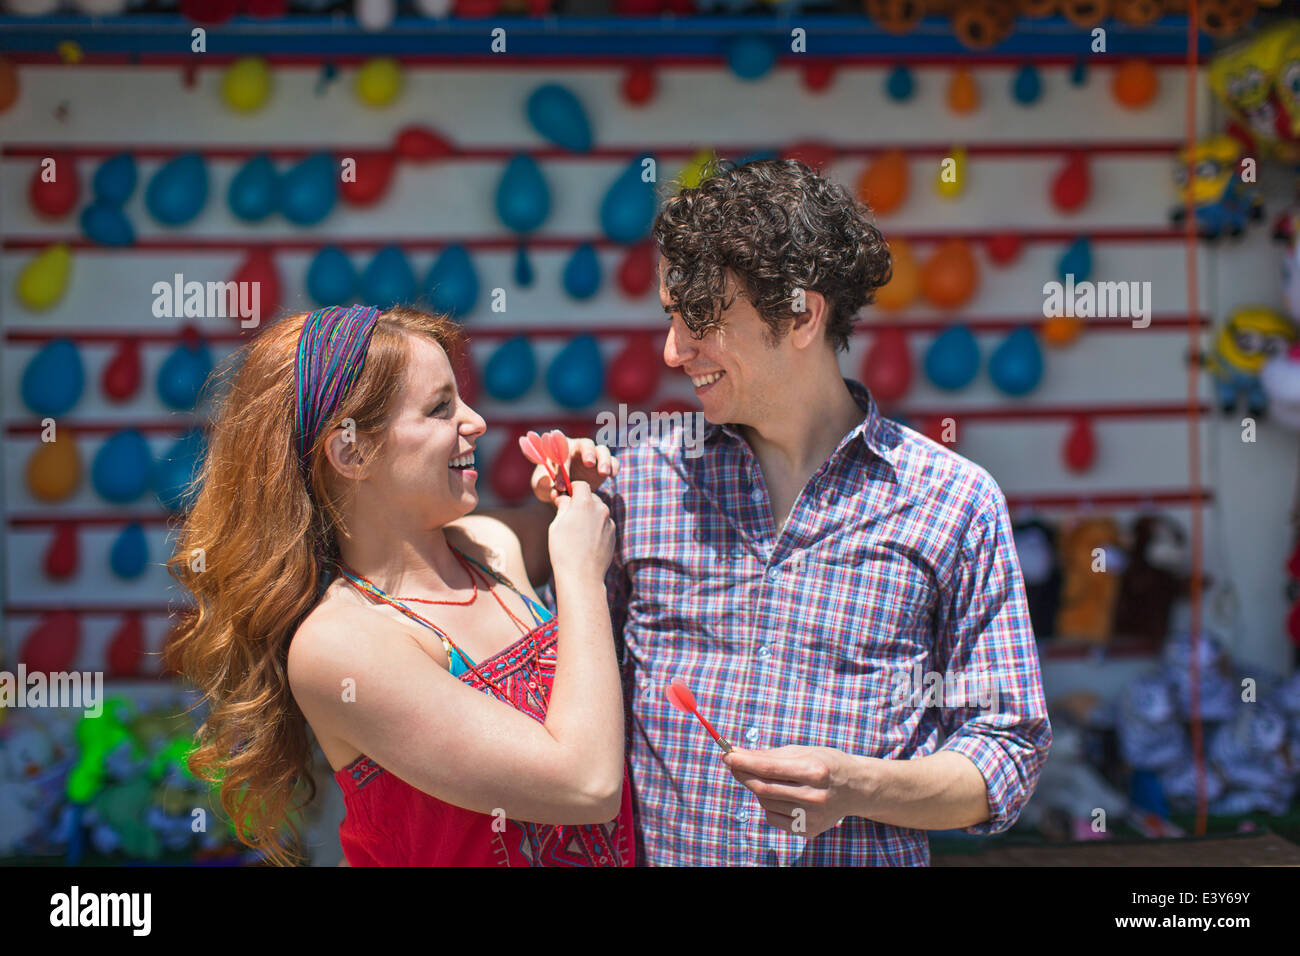 Couple with darts at fairground stall - Stock Image